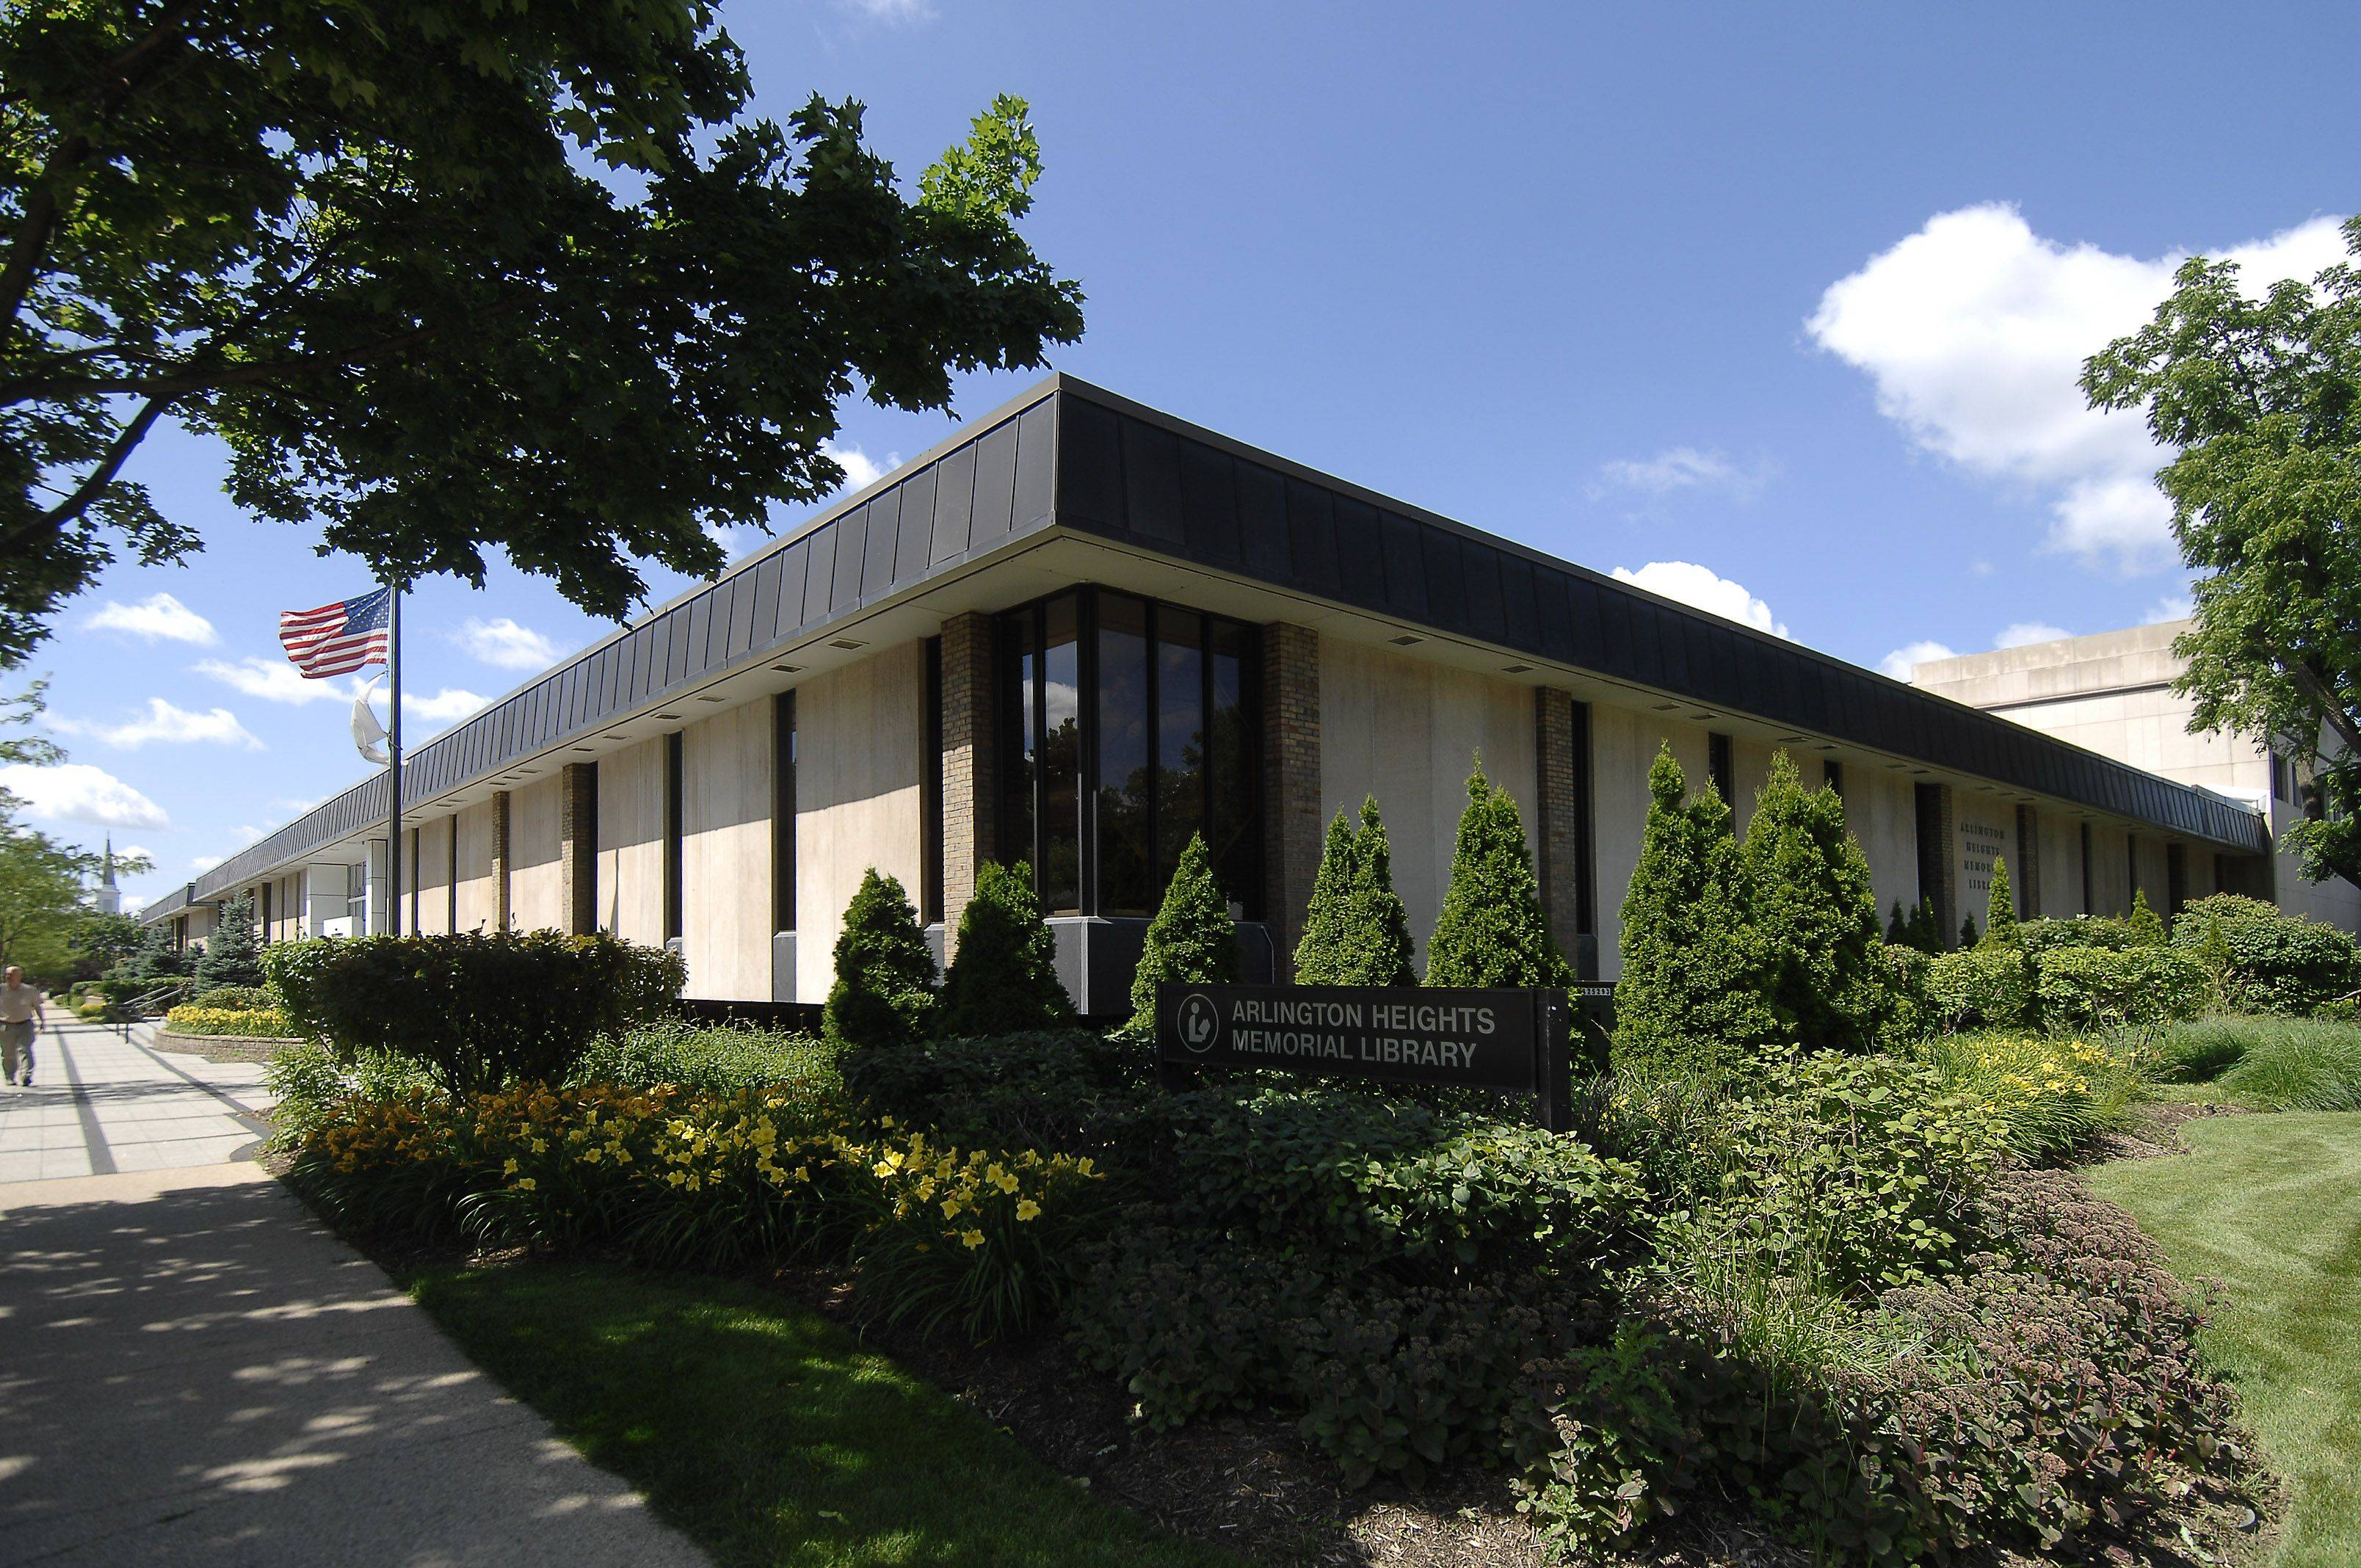 The outside of the Arlington Heights Memorial Library will remain the same, but the inside will be extensively remodeled in 2012.